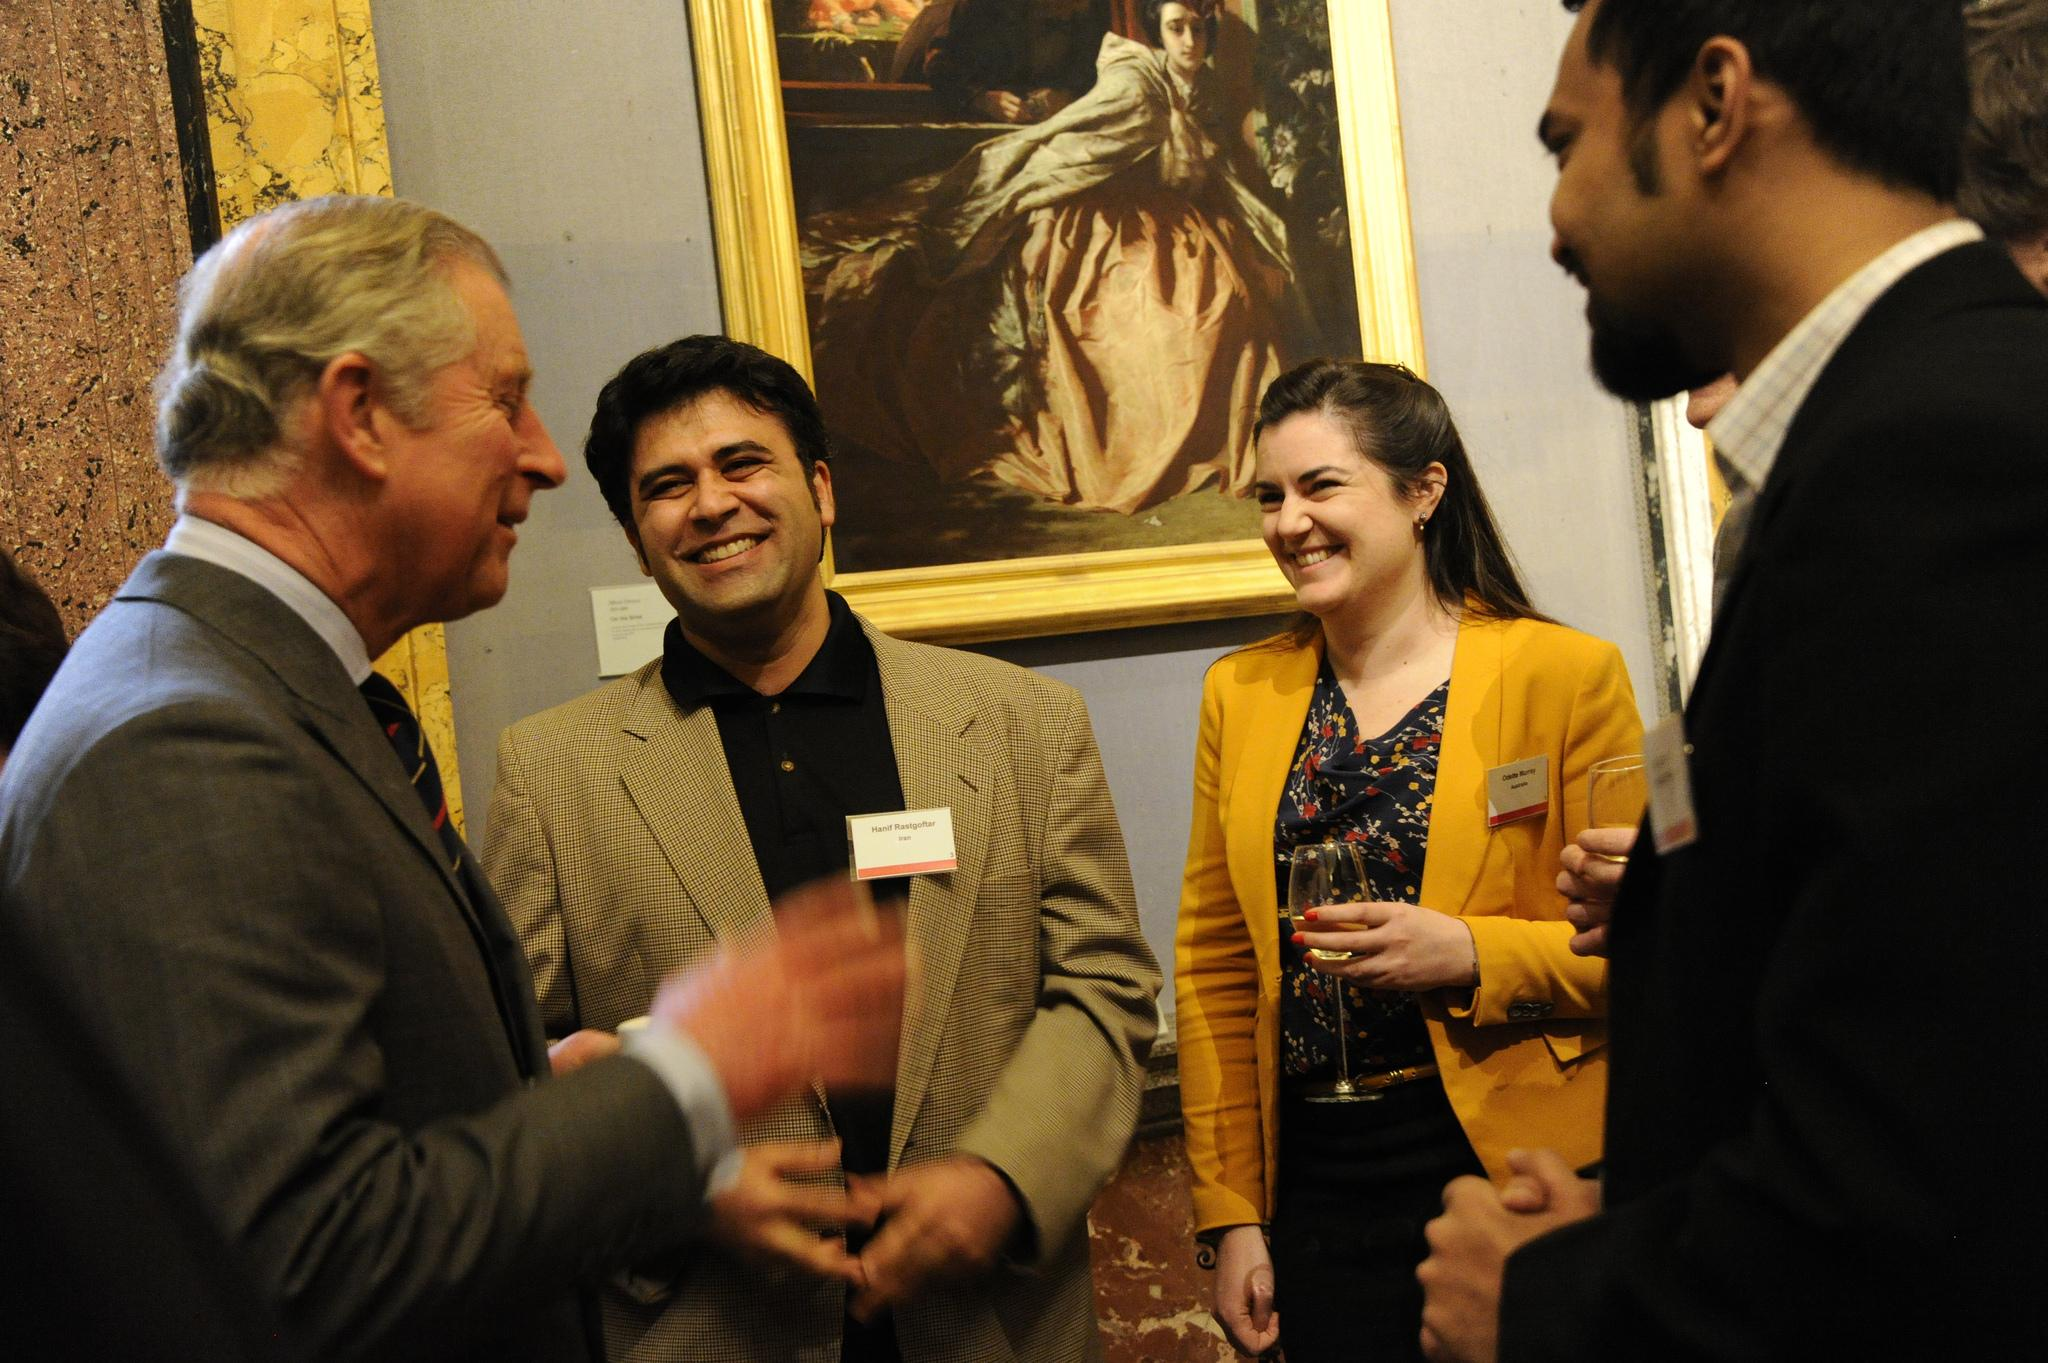 HRH The Prince of Wales at Cambridge Trusts Scholar's Reception